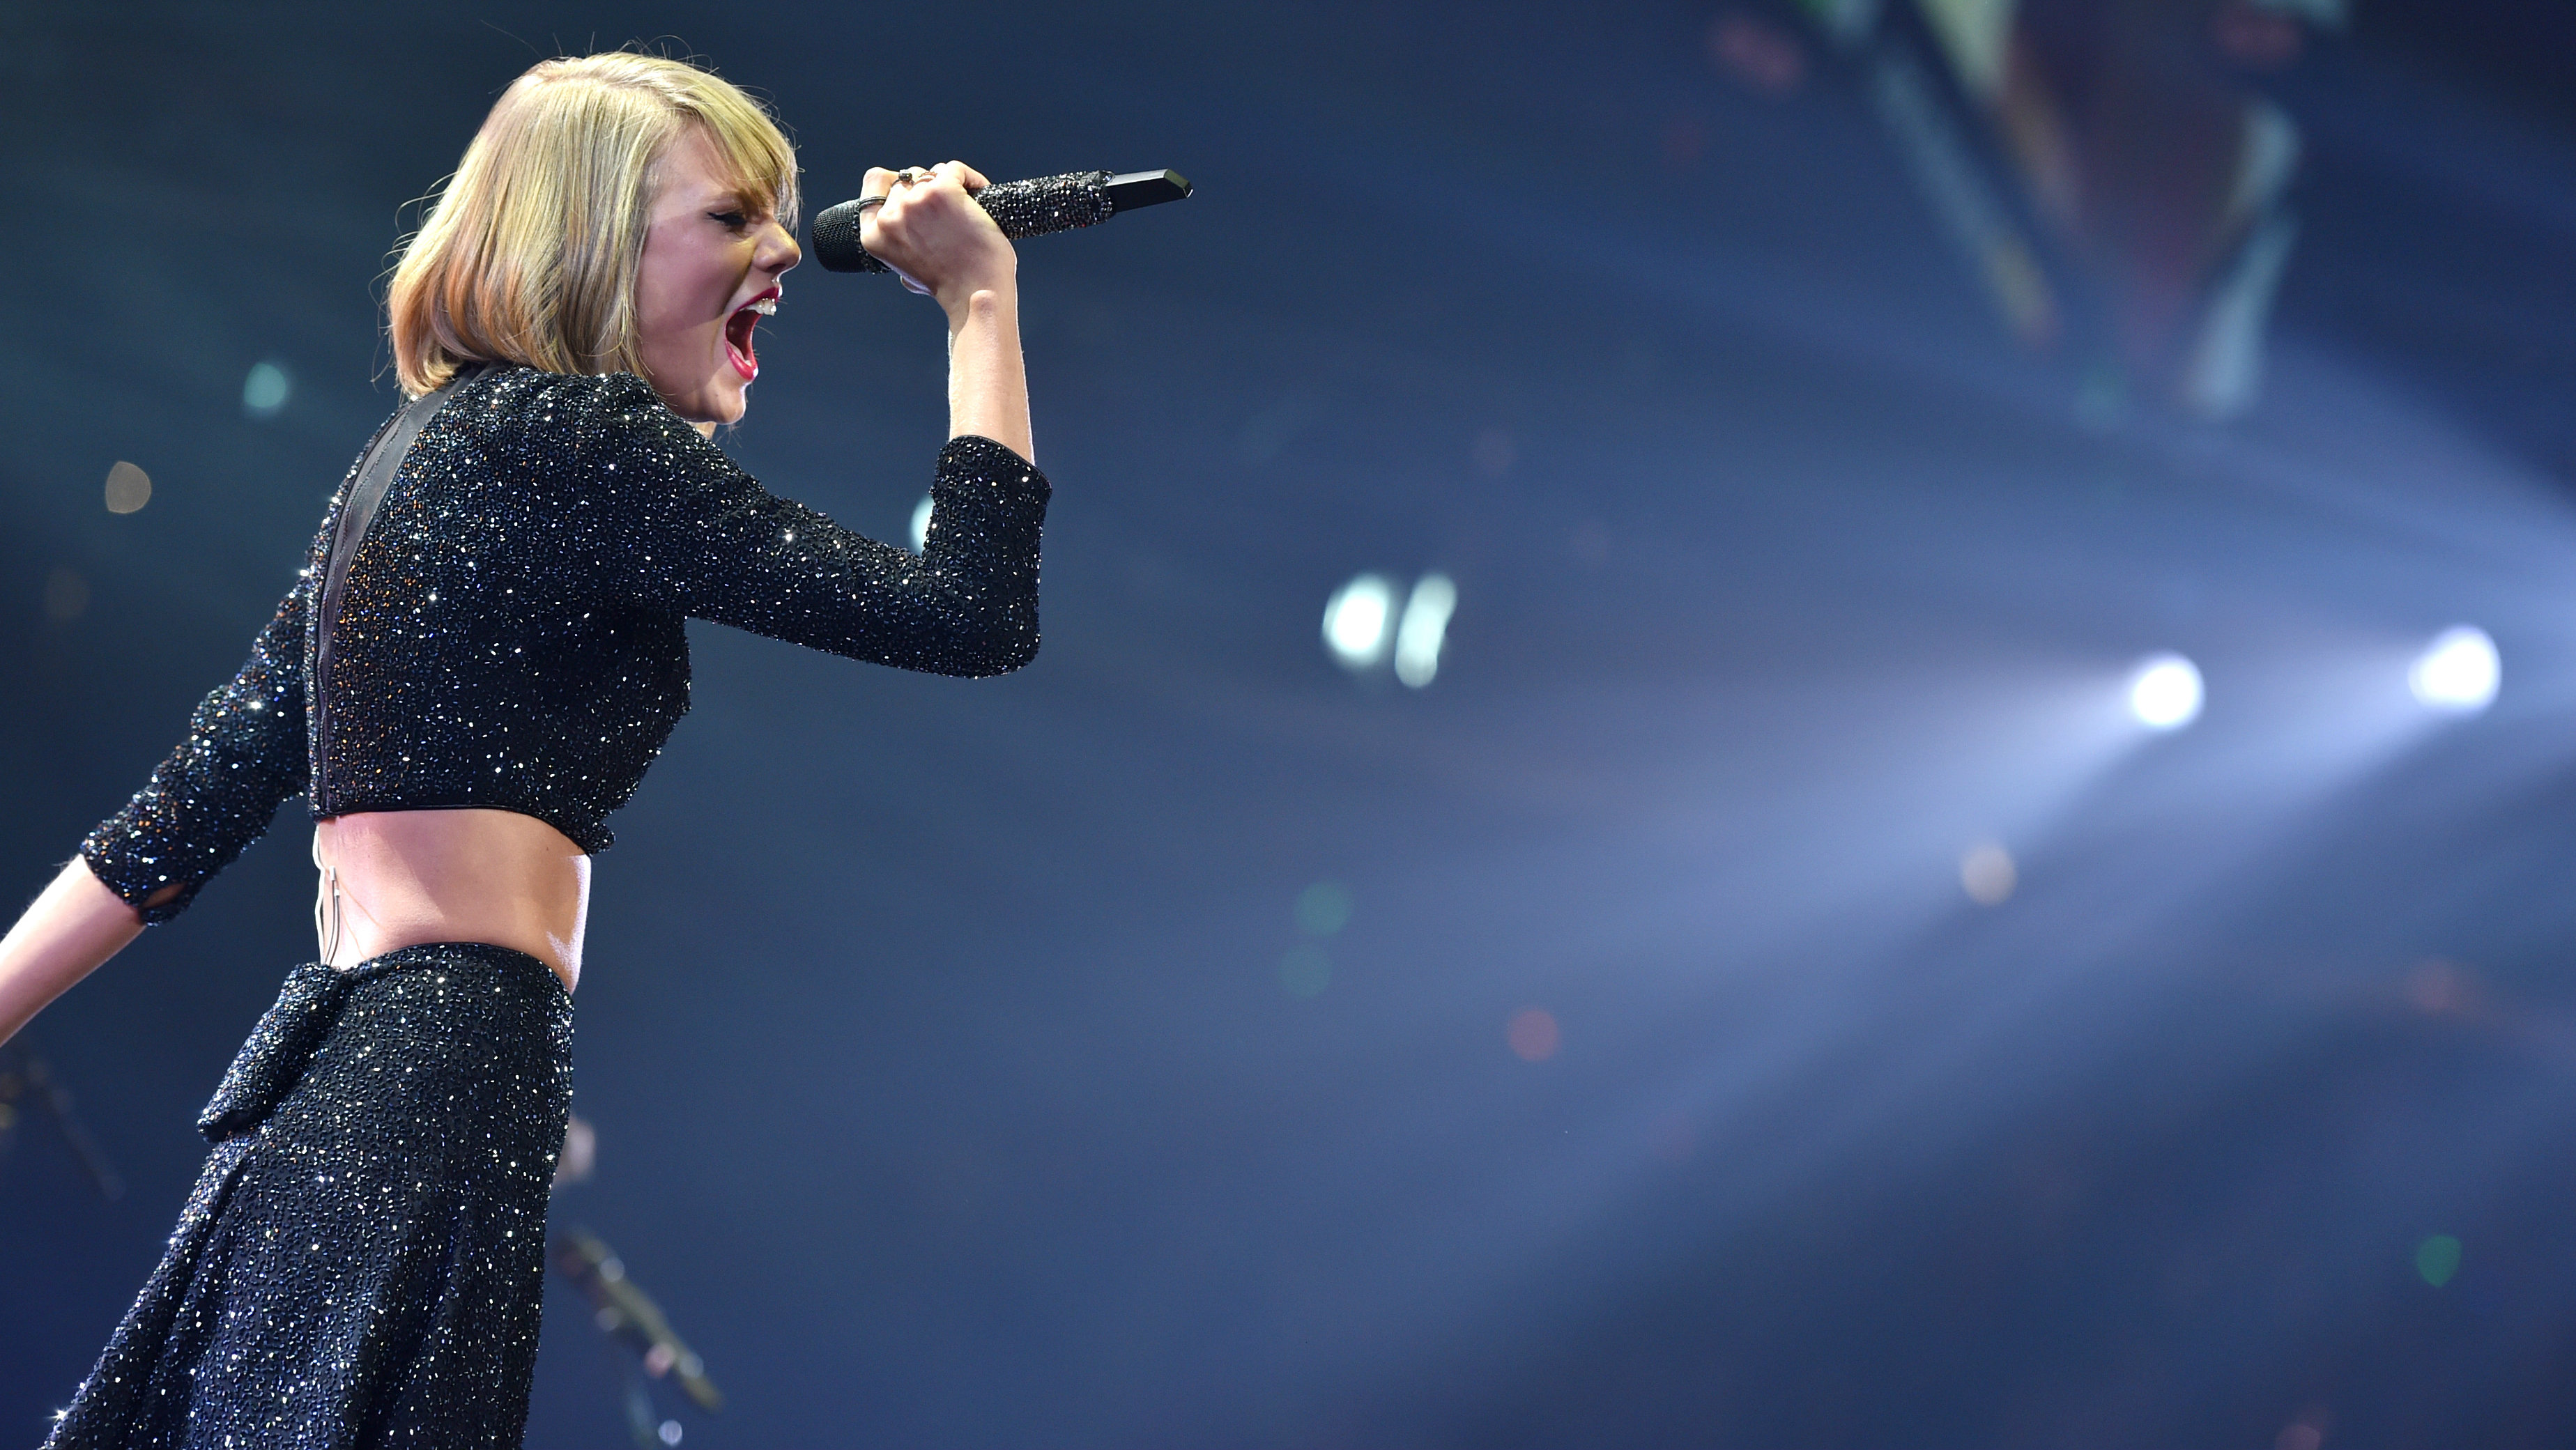 Taylor Swift performs at the KIIS FM's Jingle Ball at the Staples Center